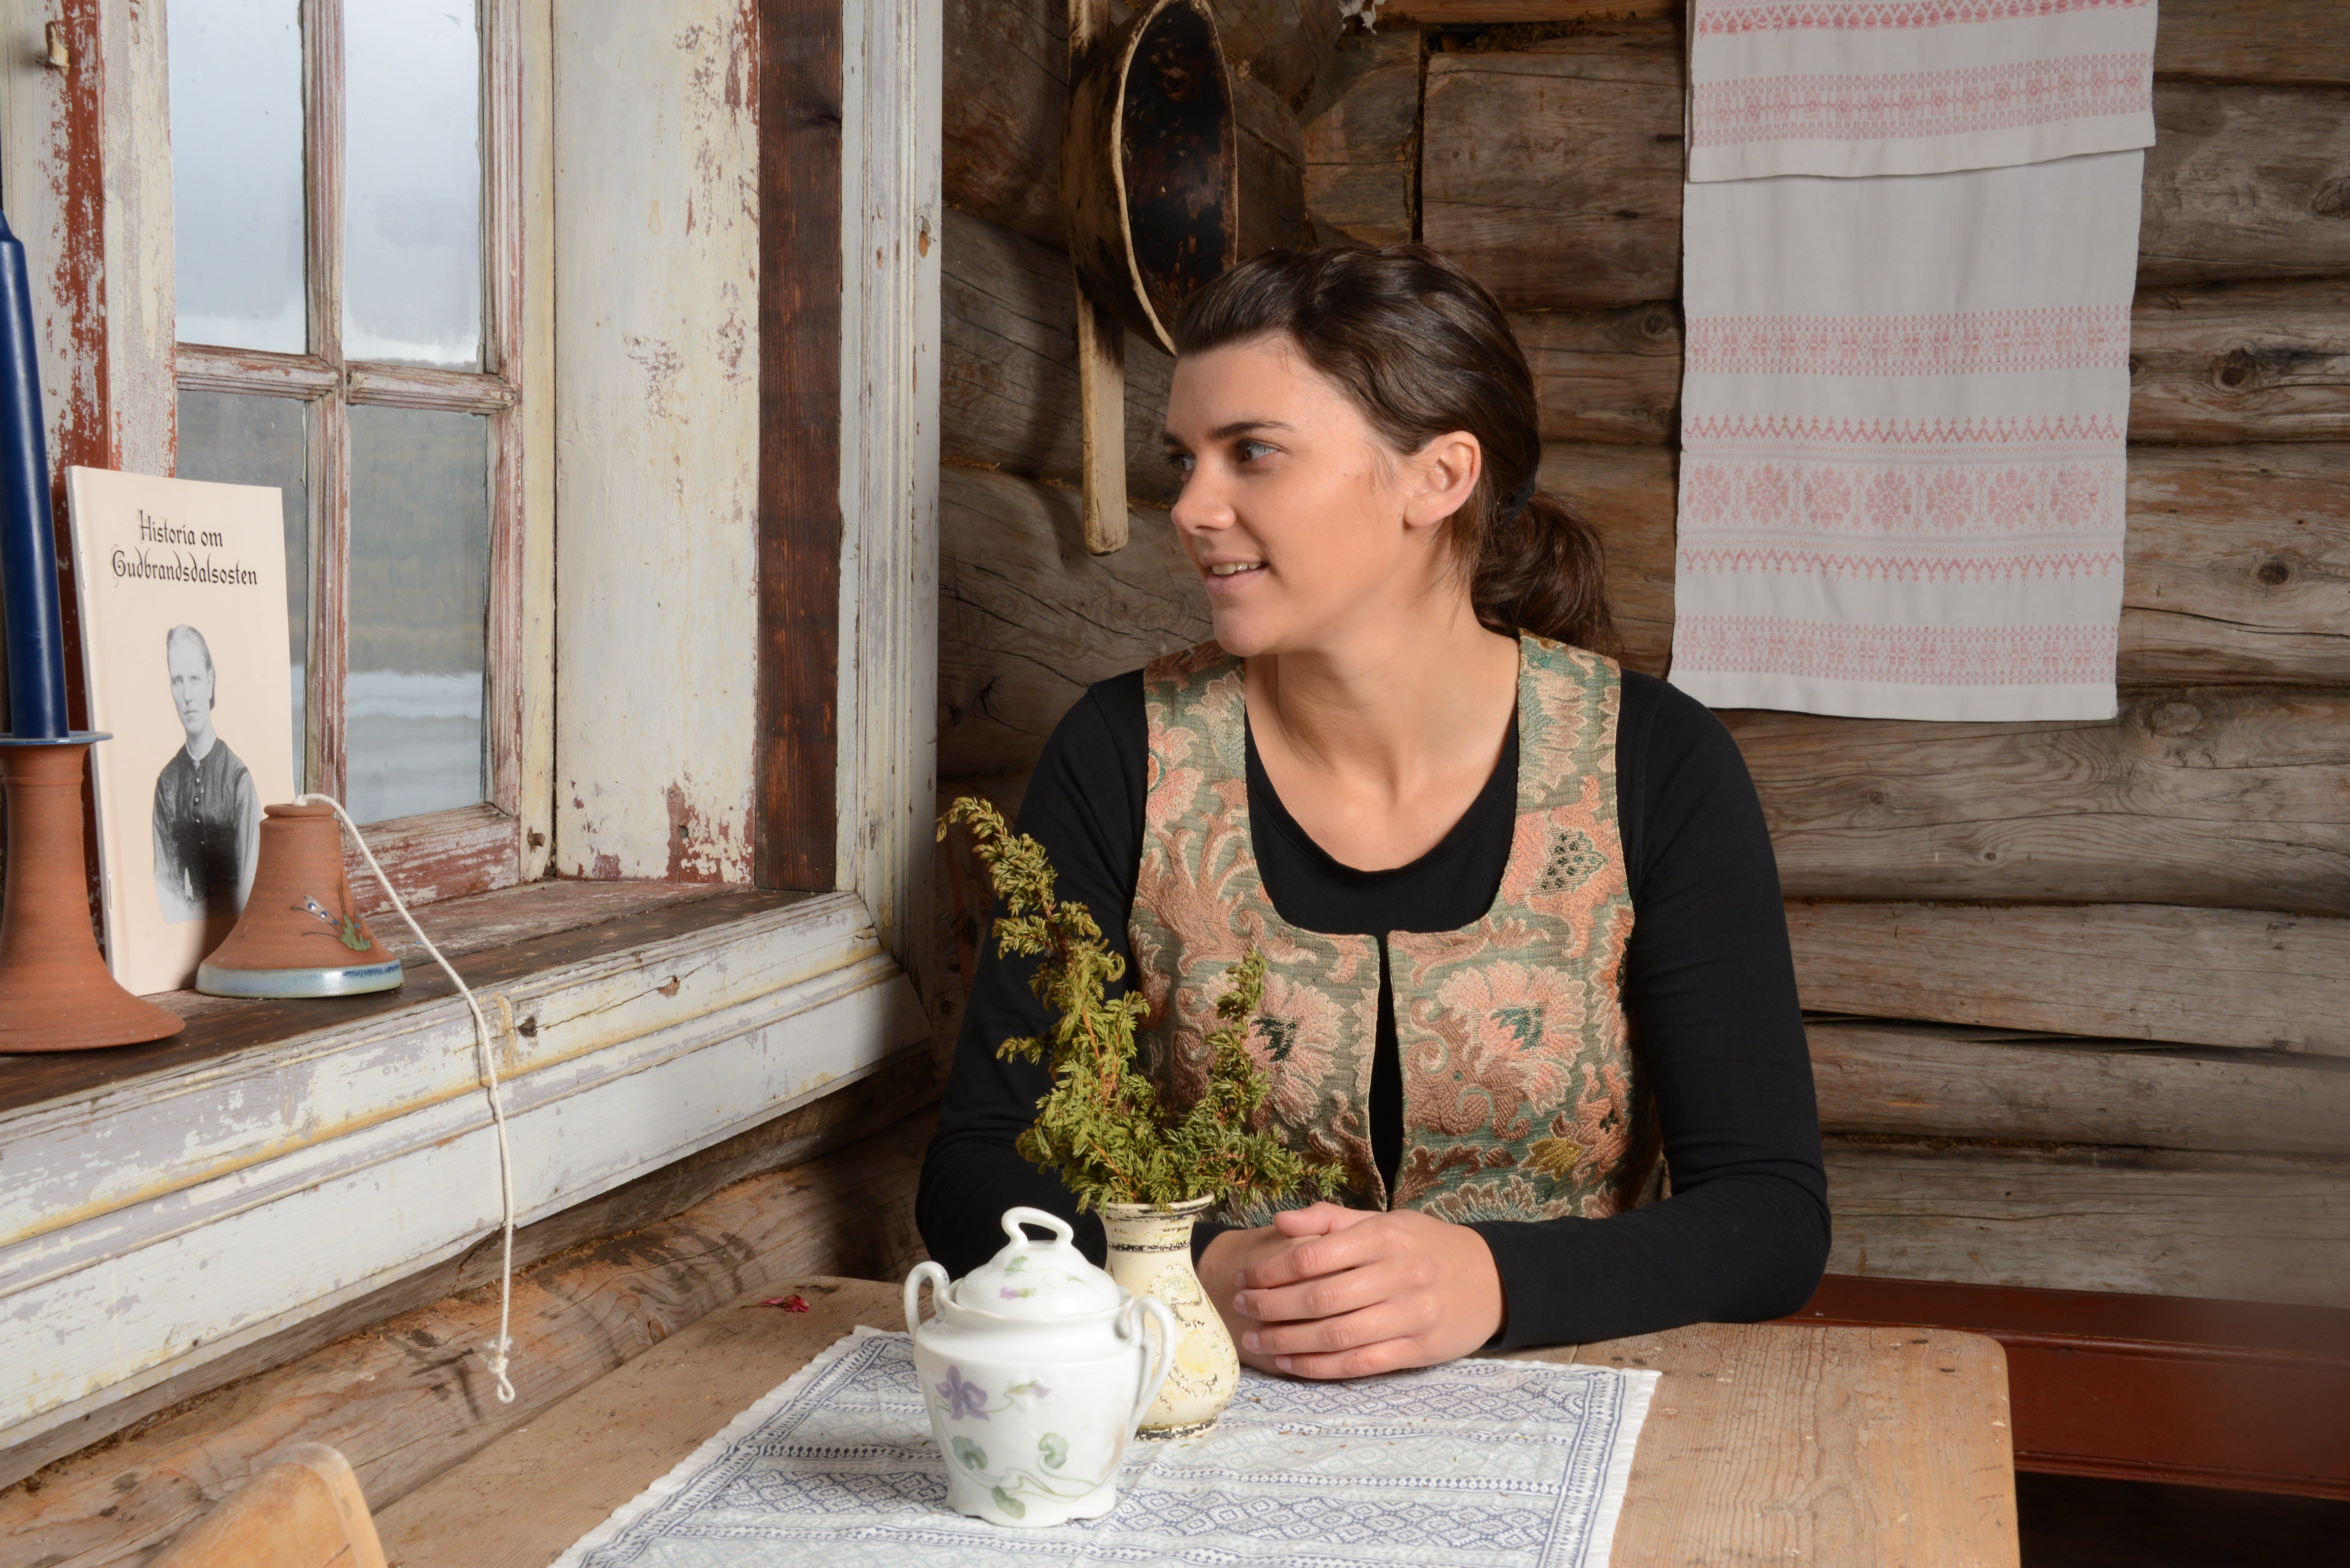 Anne Solbraa in the old wooden house where Anne Hov made the first Brunost.